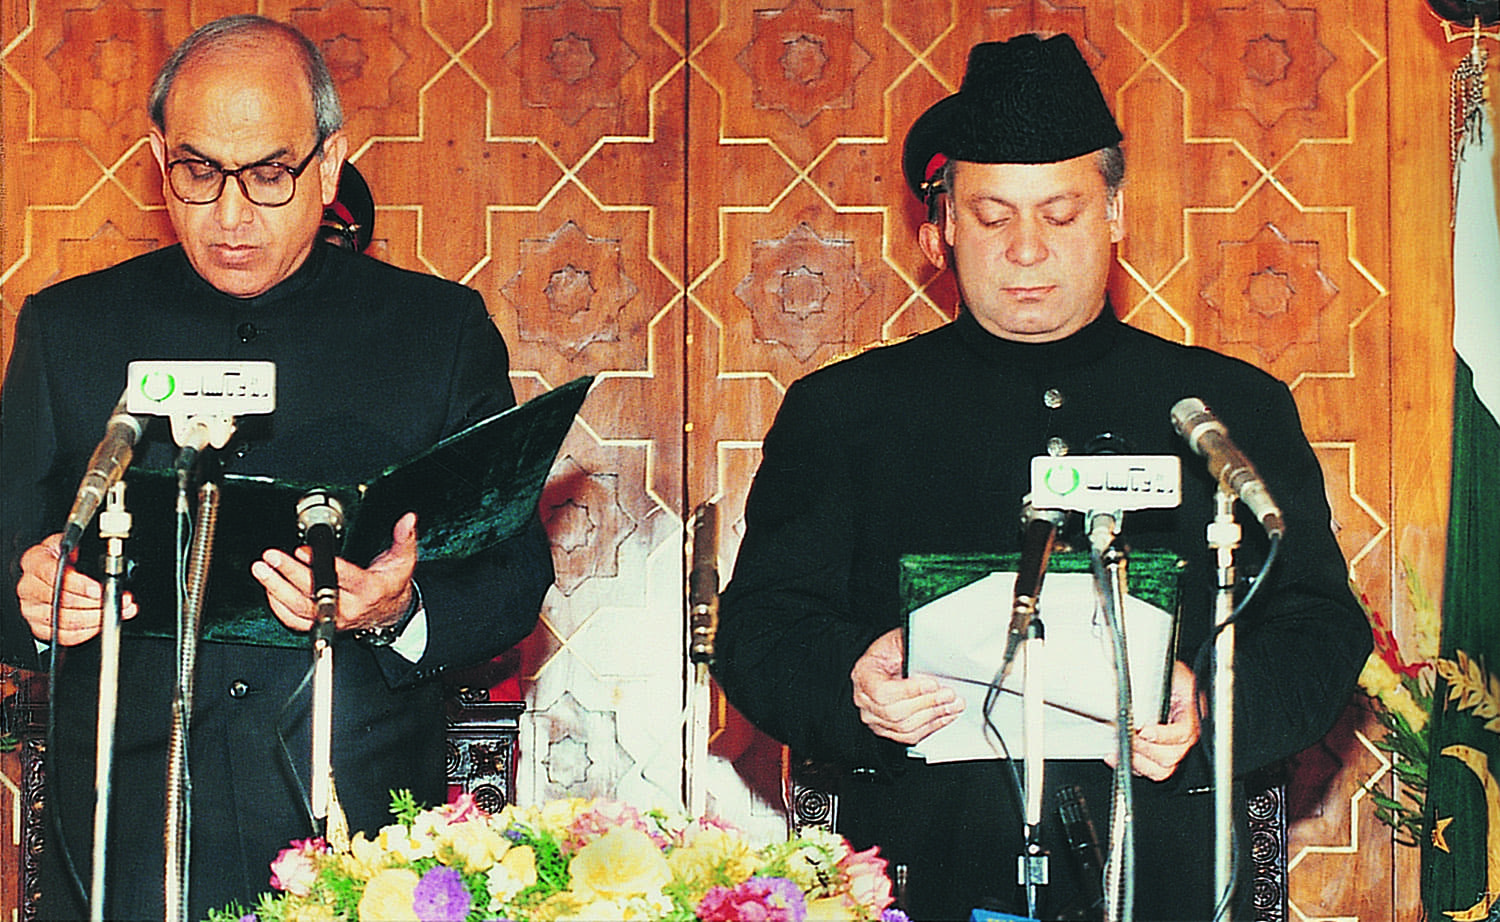 Nawaz Sharif (right) taking oath at the beginning of his second term in the prime minister's office from president Farooq Leghari. Less than a year later, the president was shown the door by the prime minister who wanted to have the wings cleared.